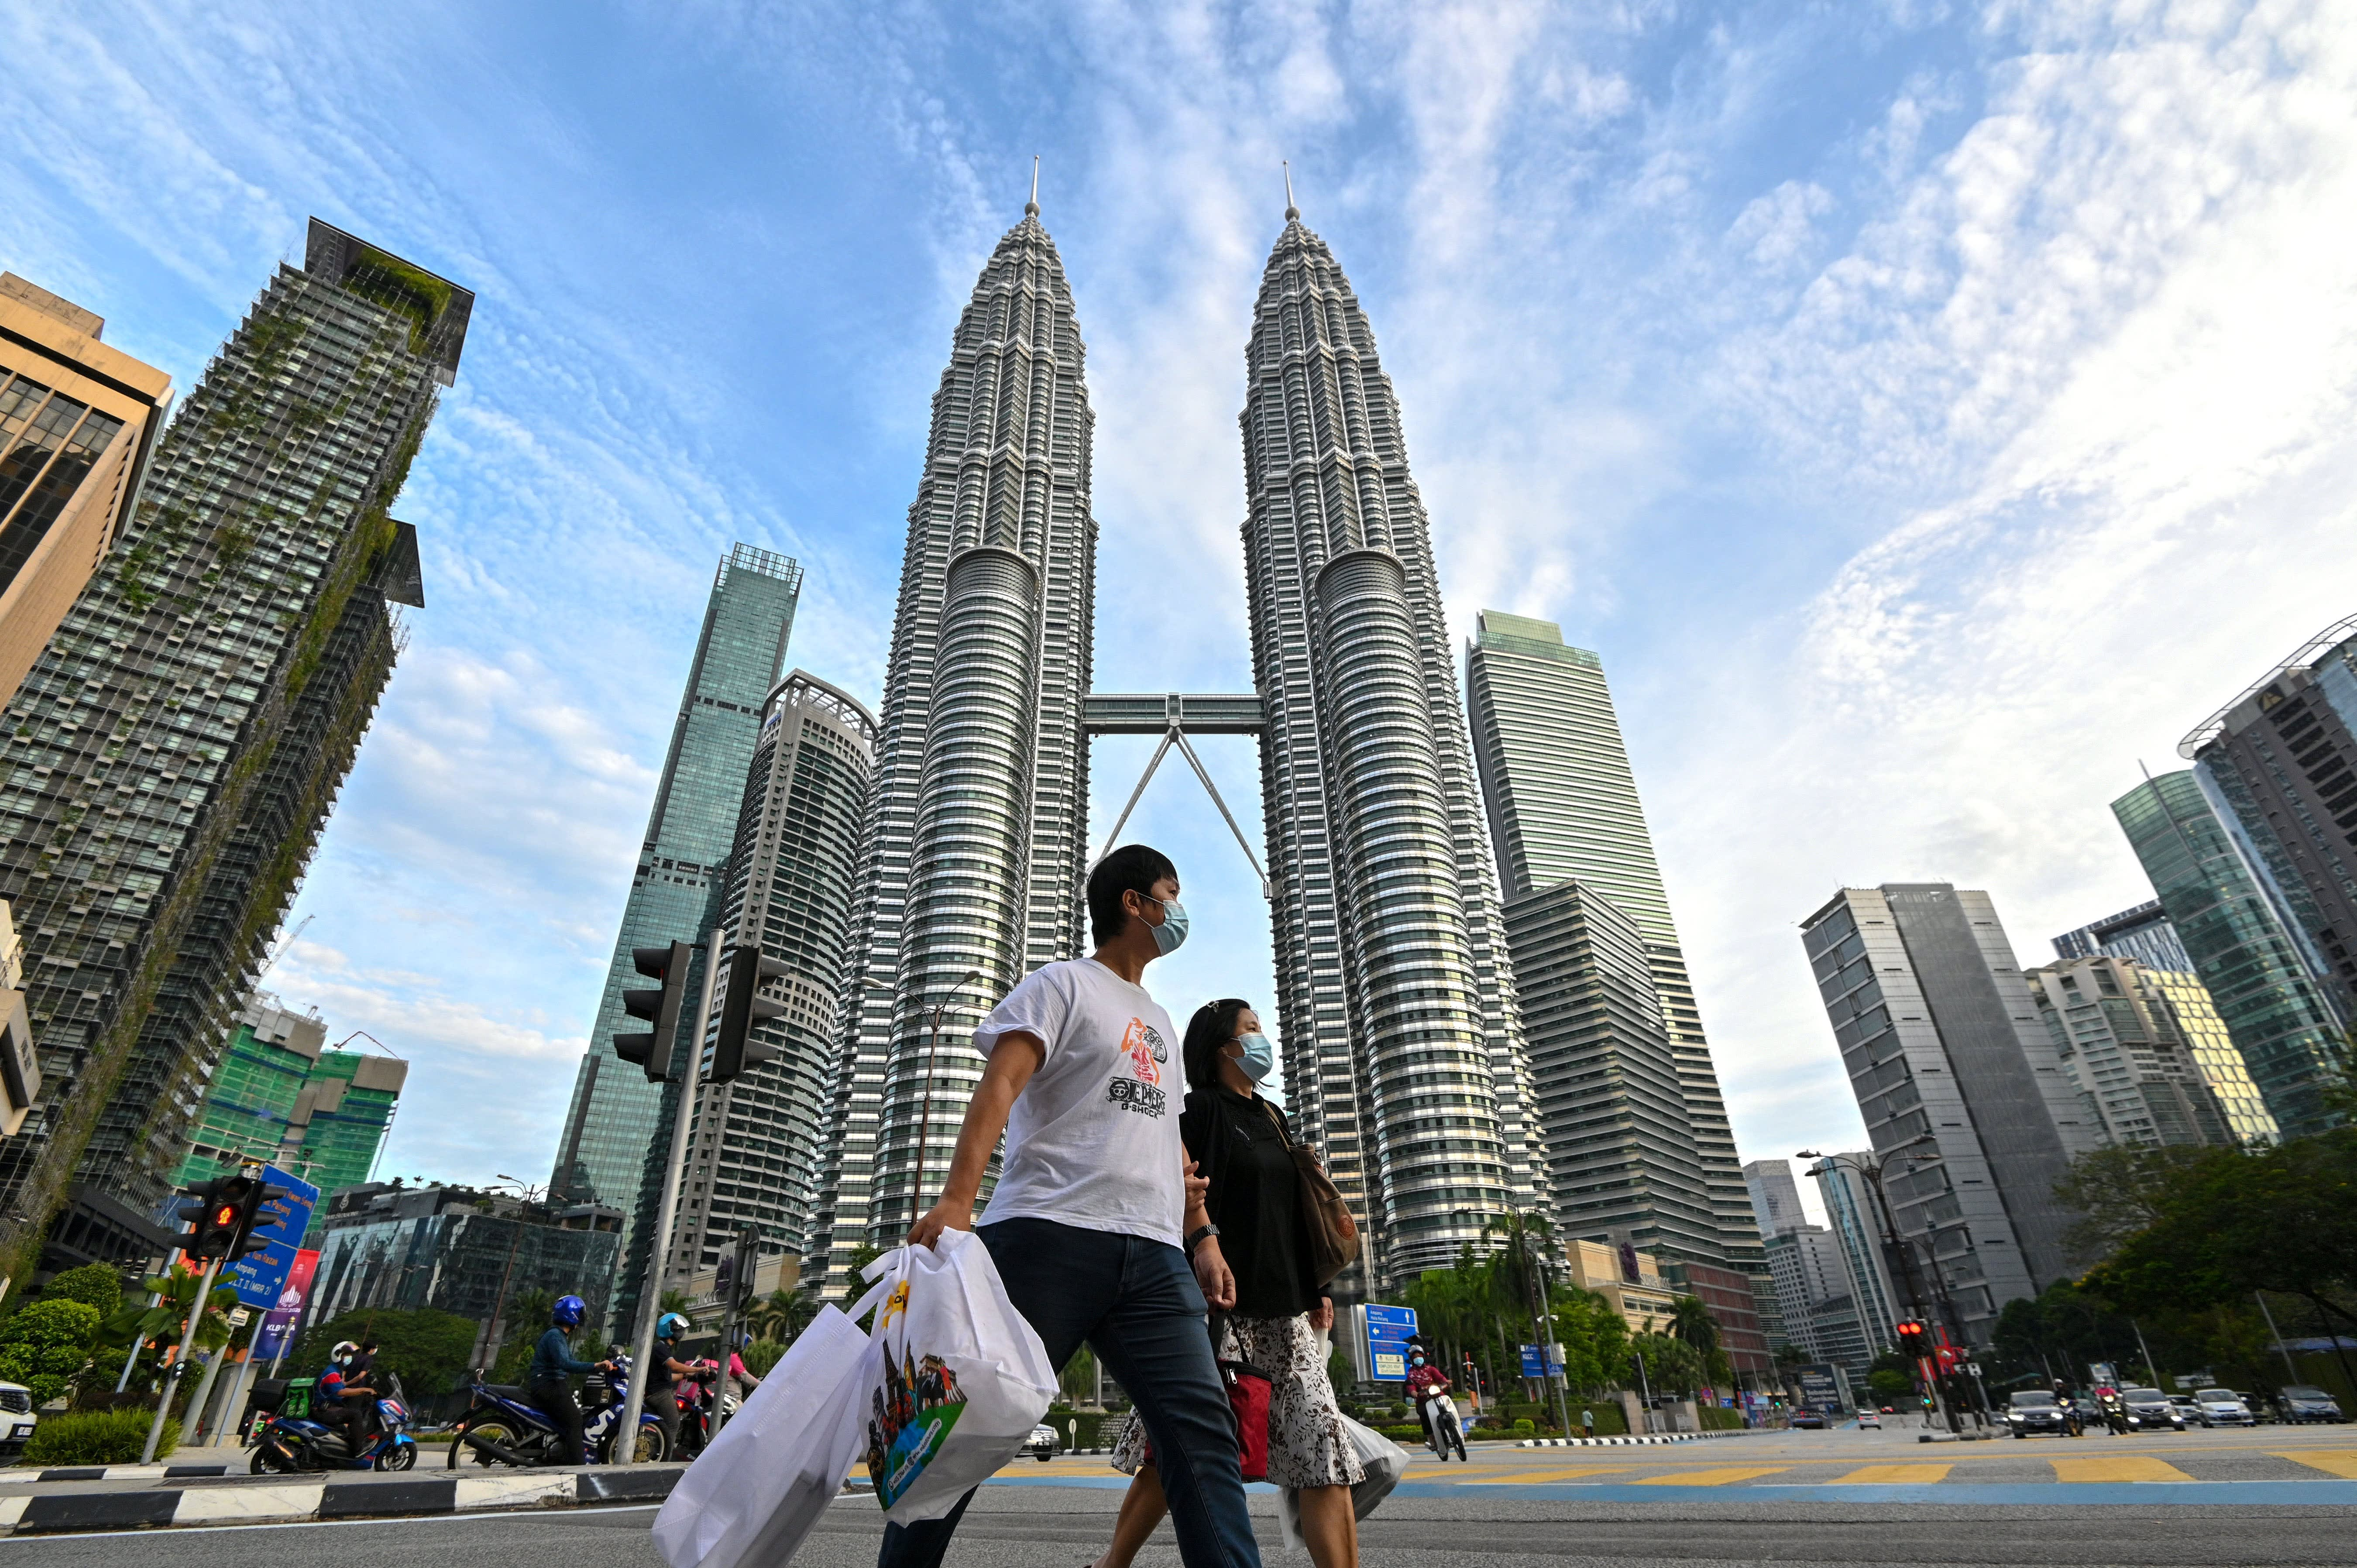 Malaysia will start treating Covid as 'endemic' around end-October, trade minister says